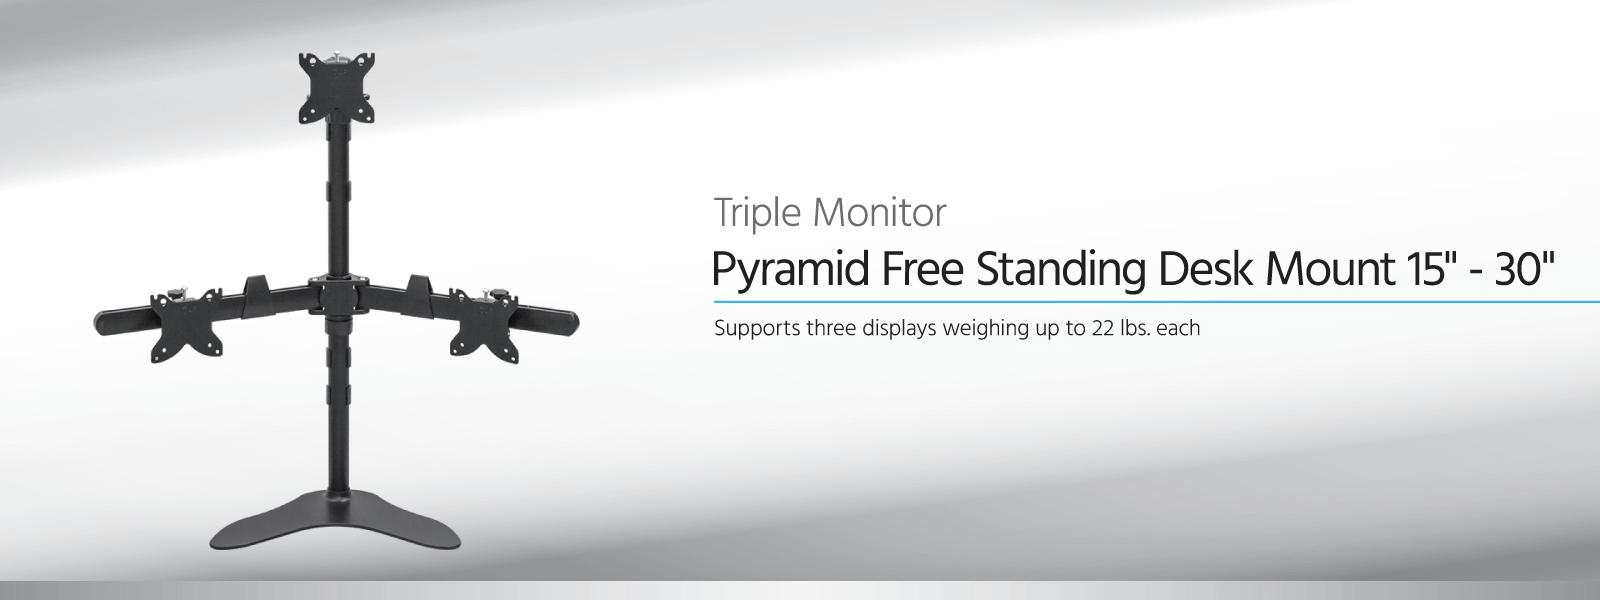 Triple Monitor Pyramid Free Standing Desk Mount